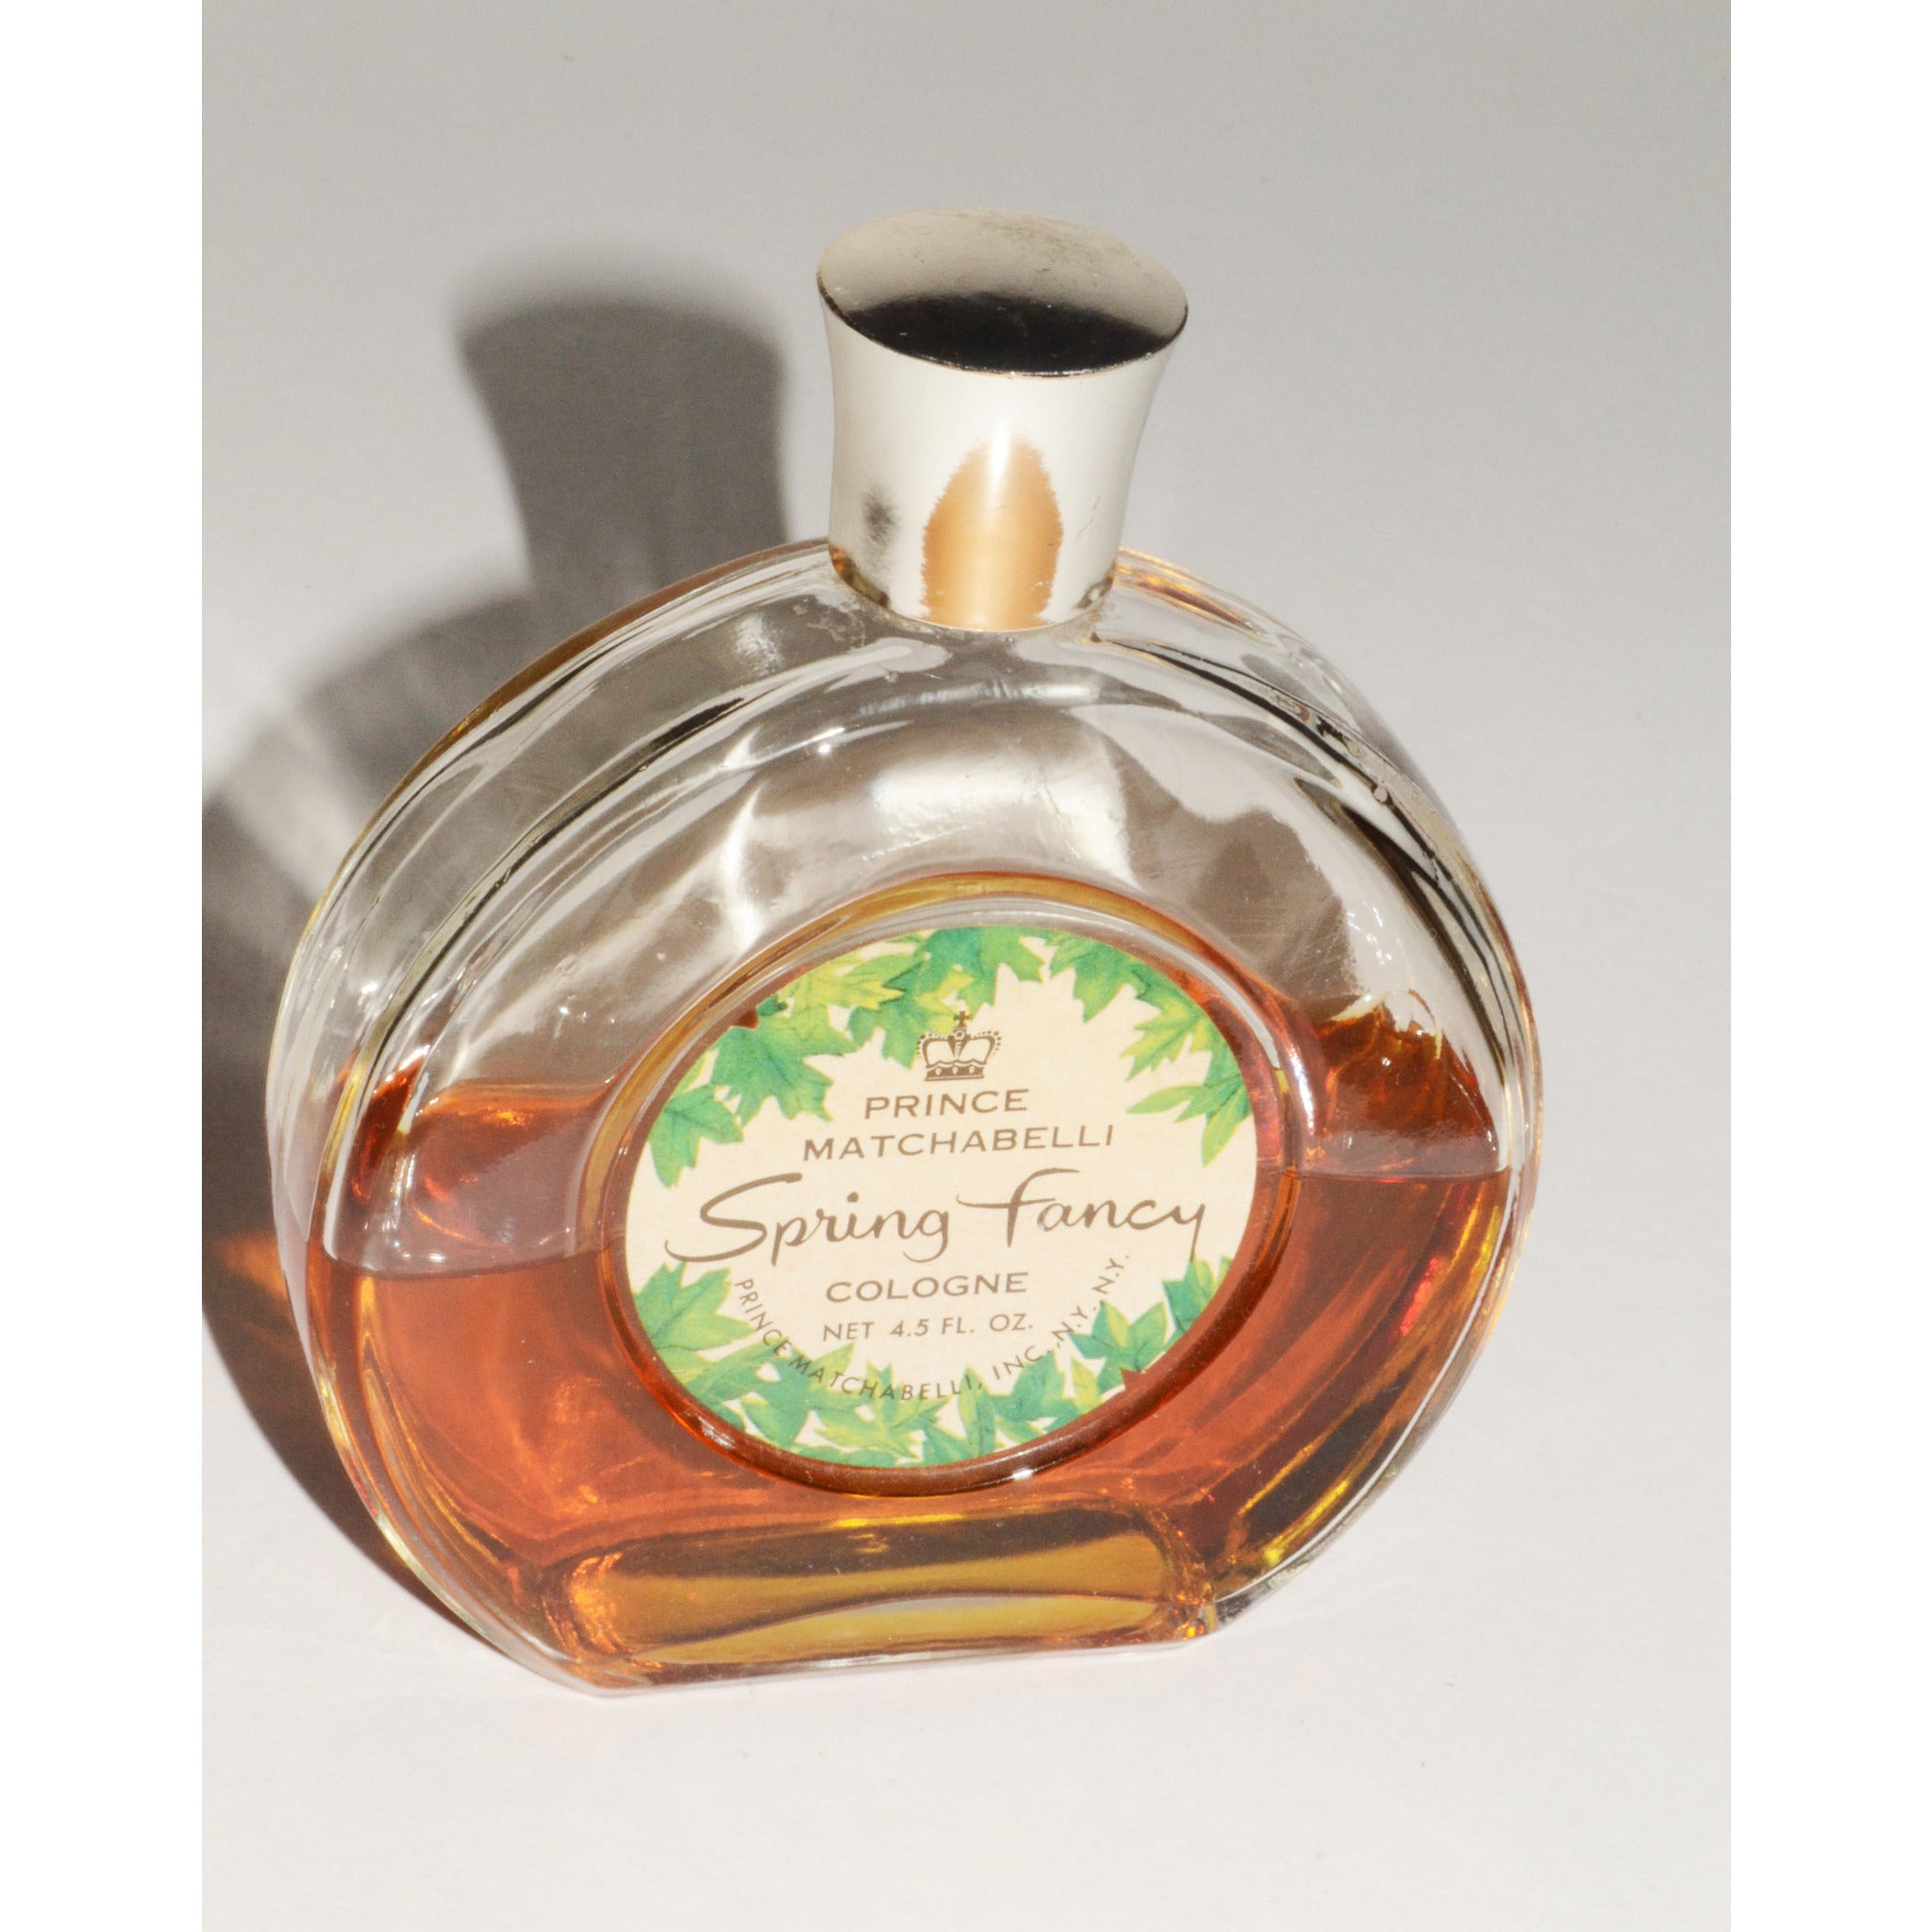 Vintage Spring Fancy Cologne By Prince Matchabelli